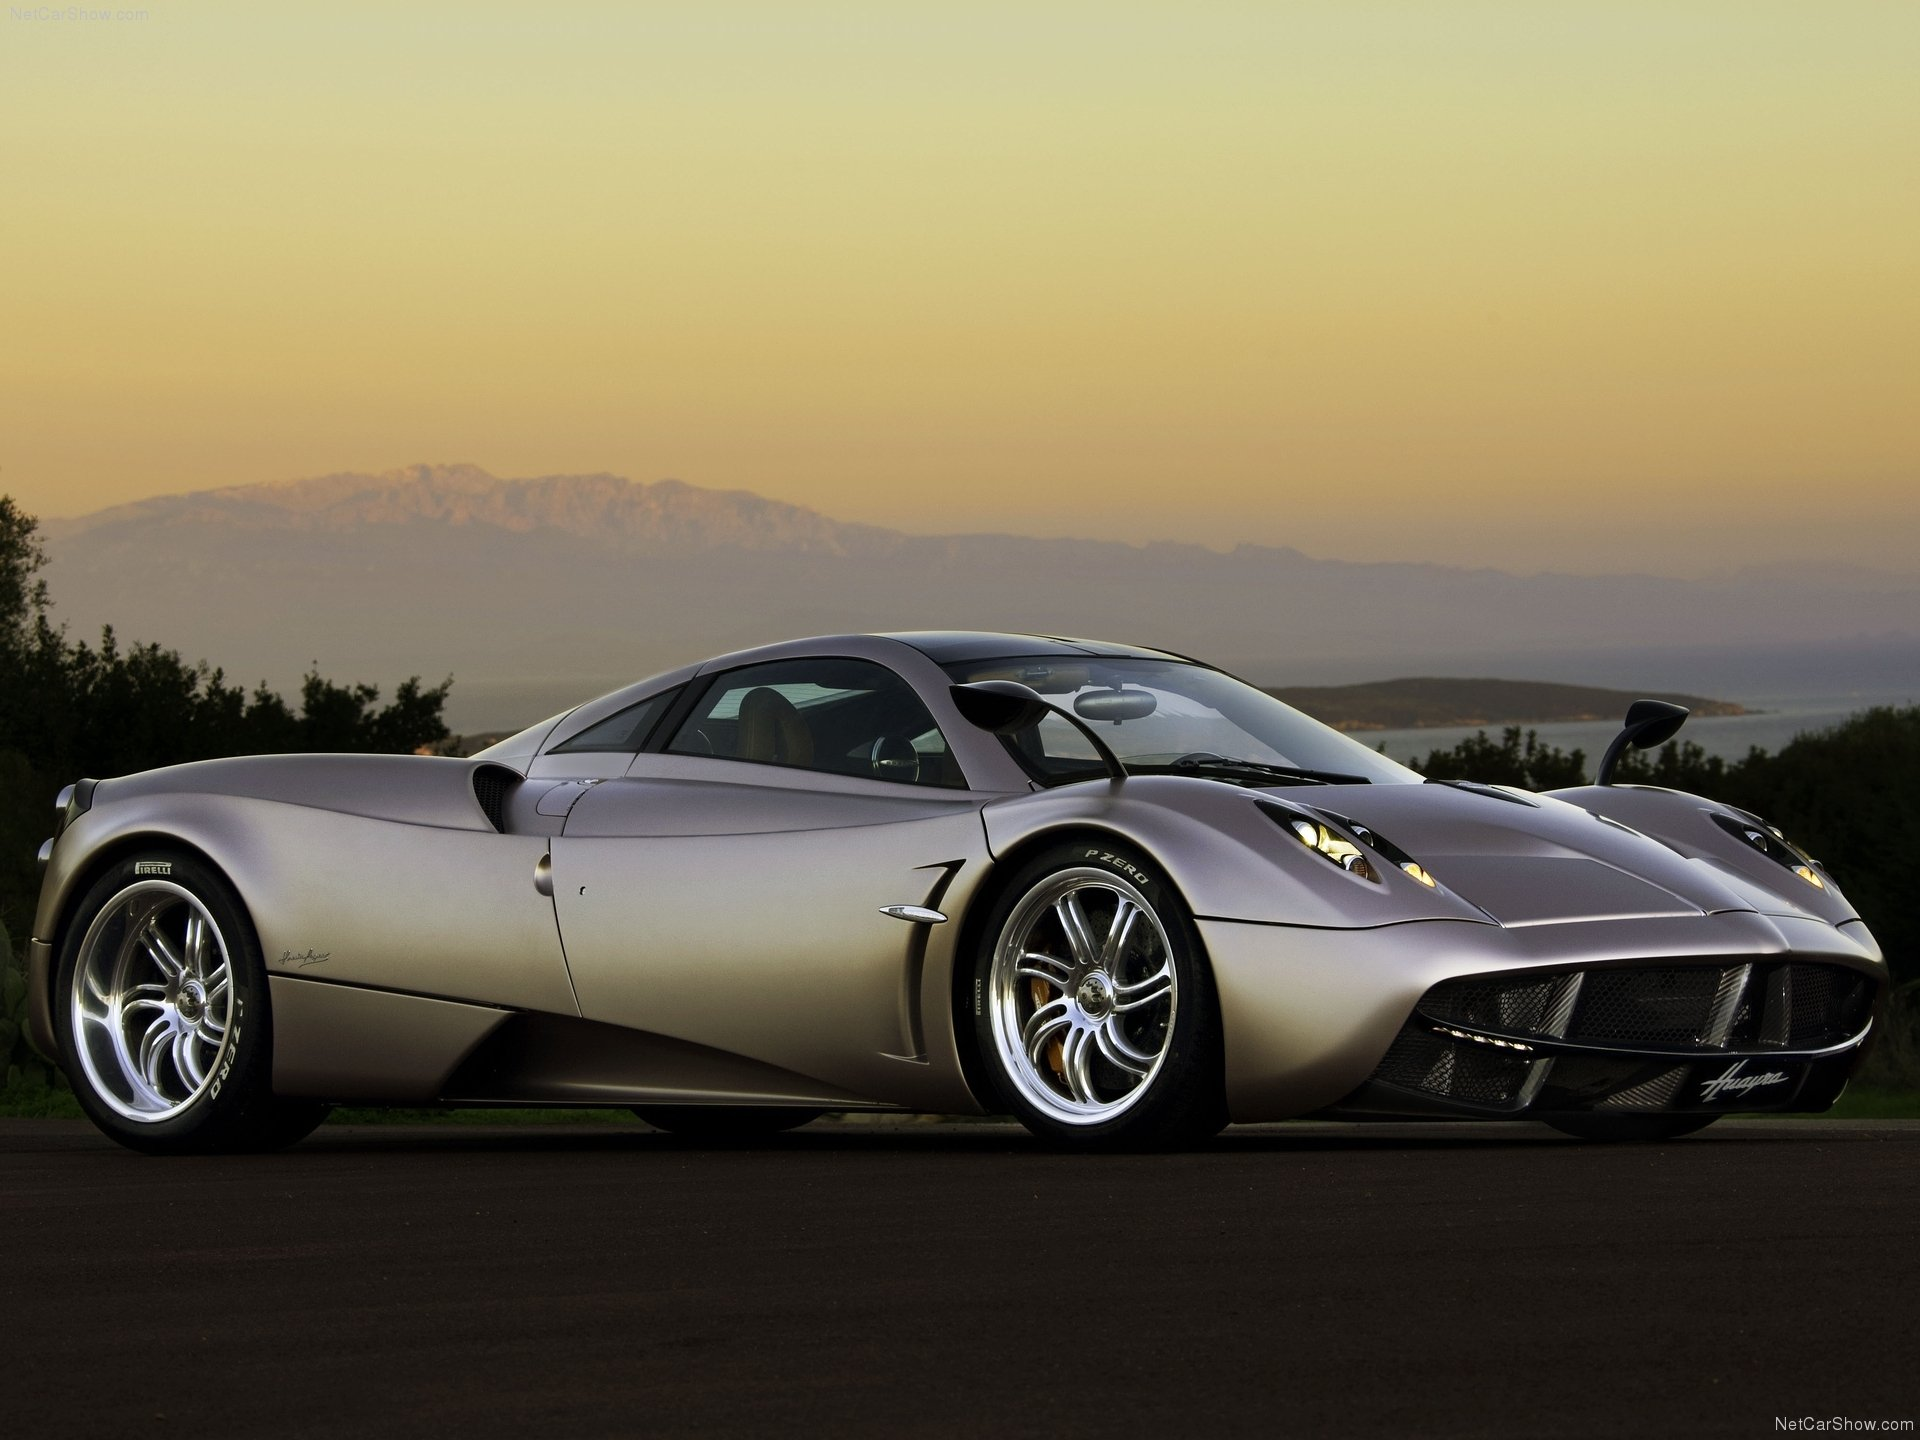 Pagani-car-wallpaper-wp421814-1